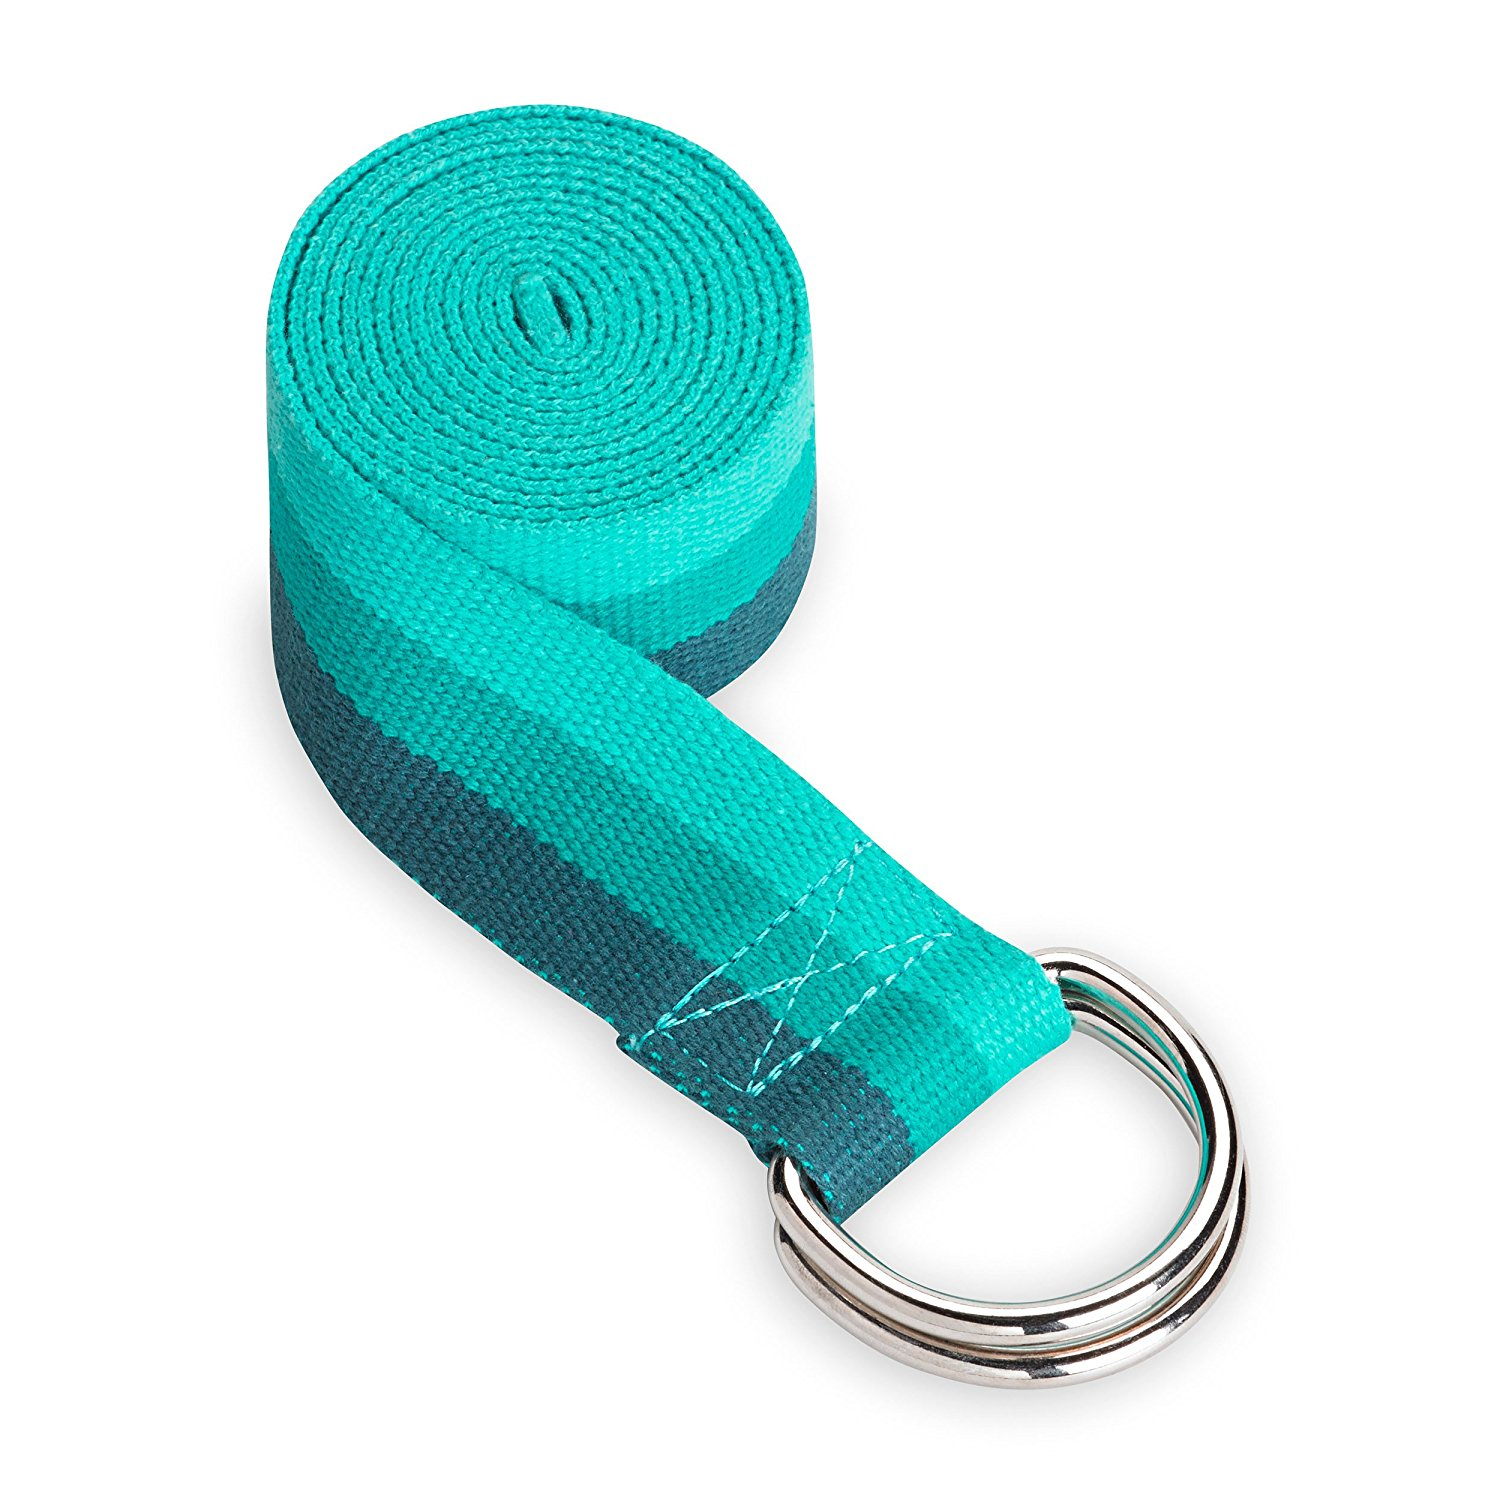 gaiam lush teal yoga strap